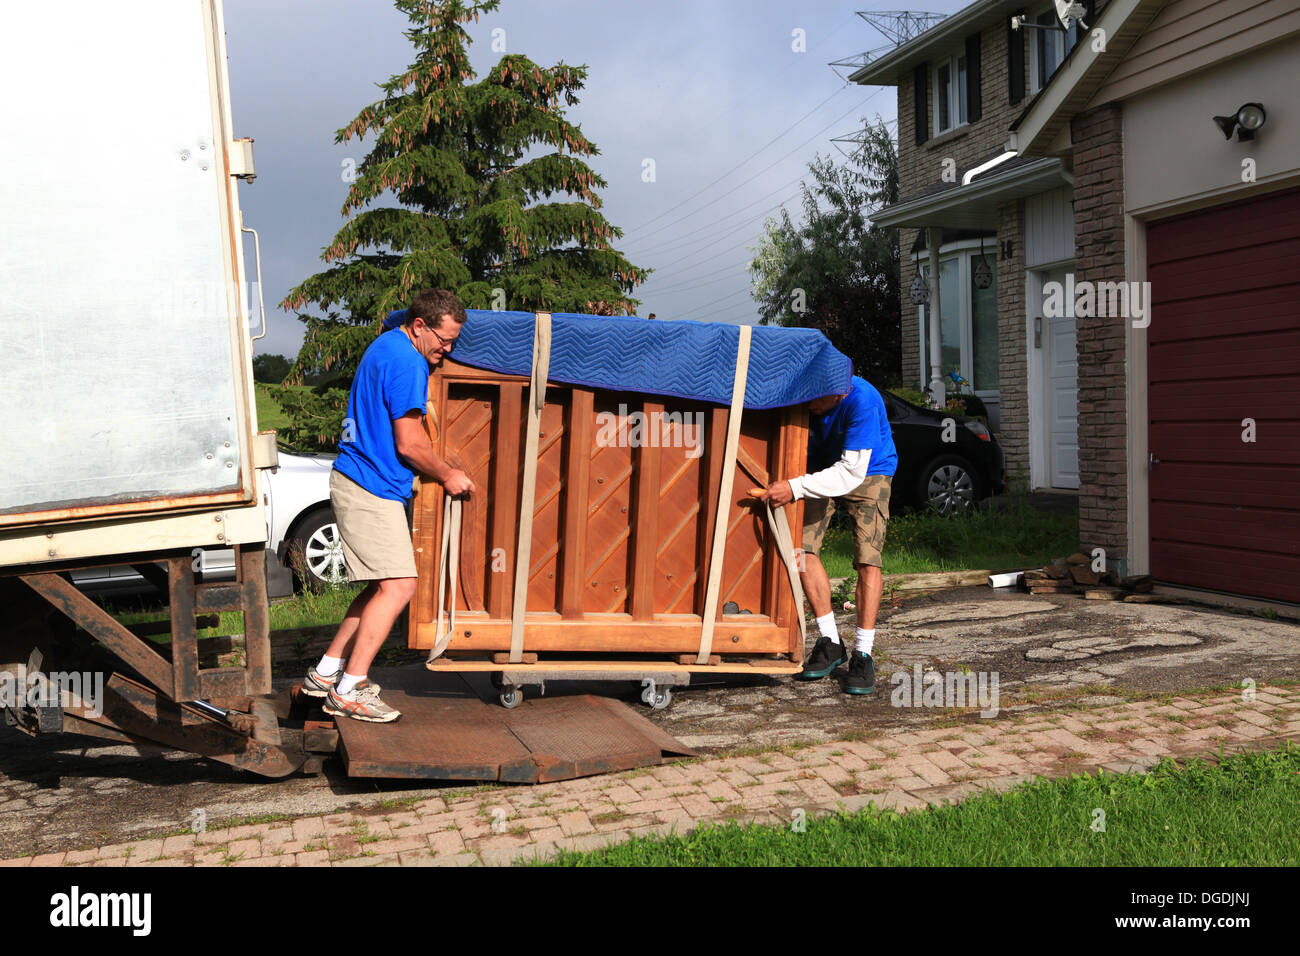 Moving A Piano High Resolution Stock Photography and Images - Alamy